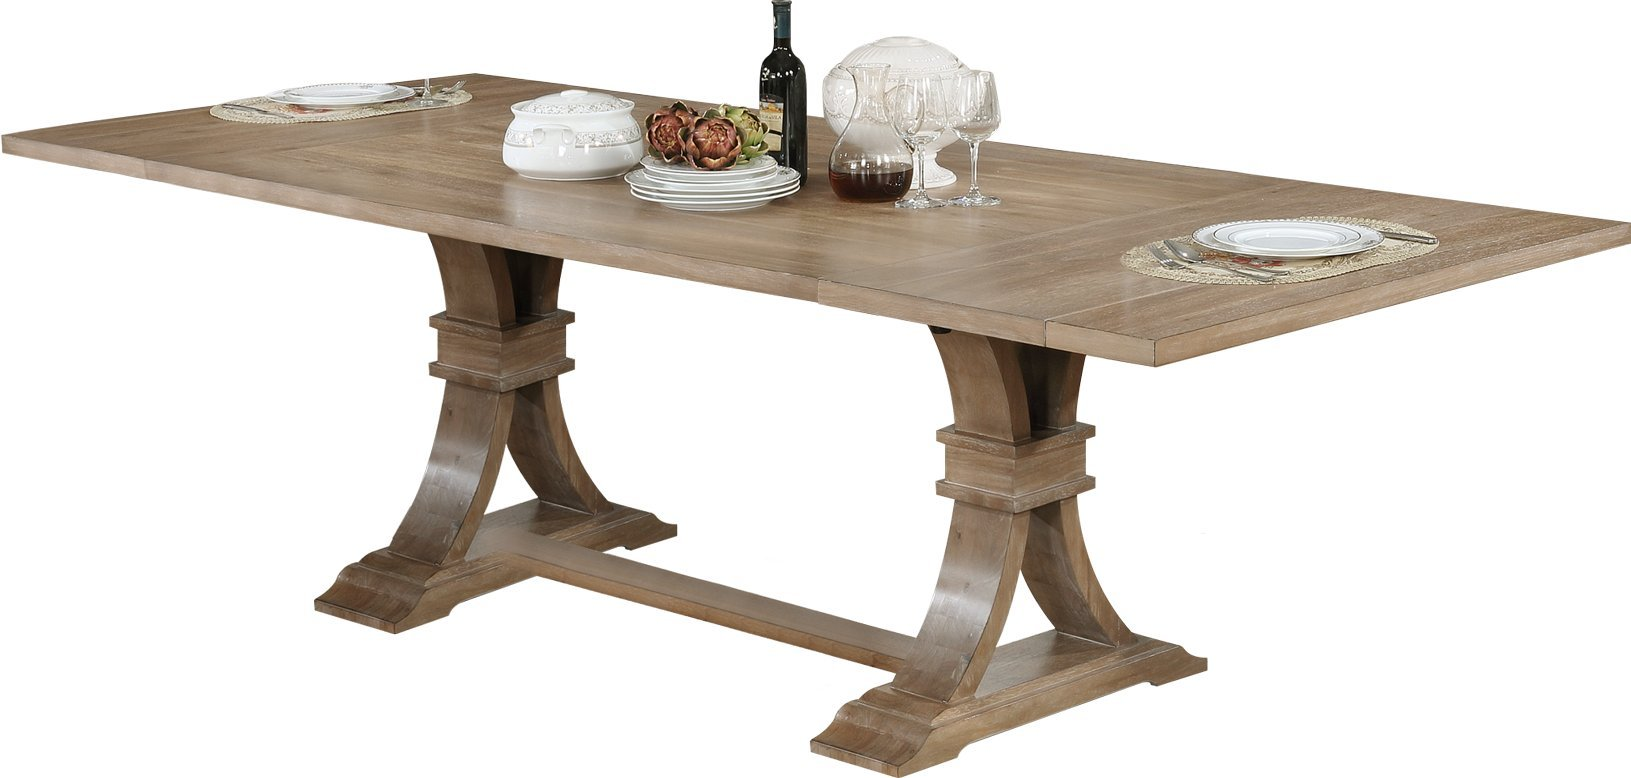 Best Quality Furniture D377T Rustic Dining Table by Best Quality